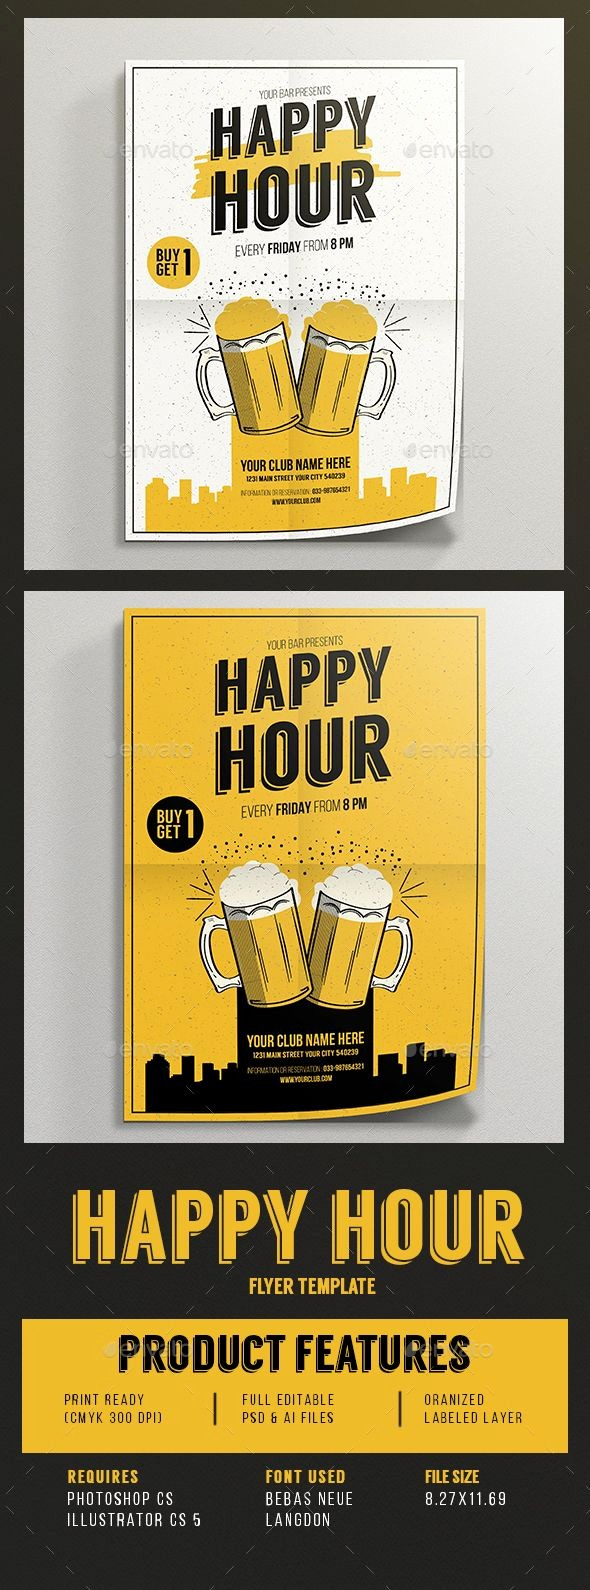 Happy Hour Flyer Template Free Fresh Happy Hour Beer Promotion Flyer Template Psd Vector Ai